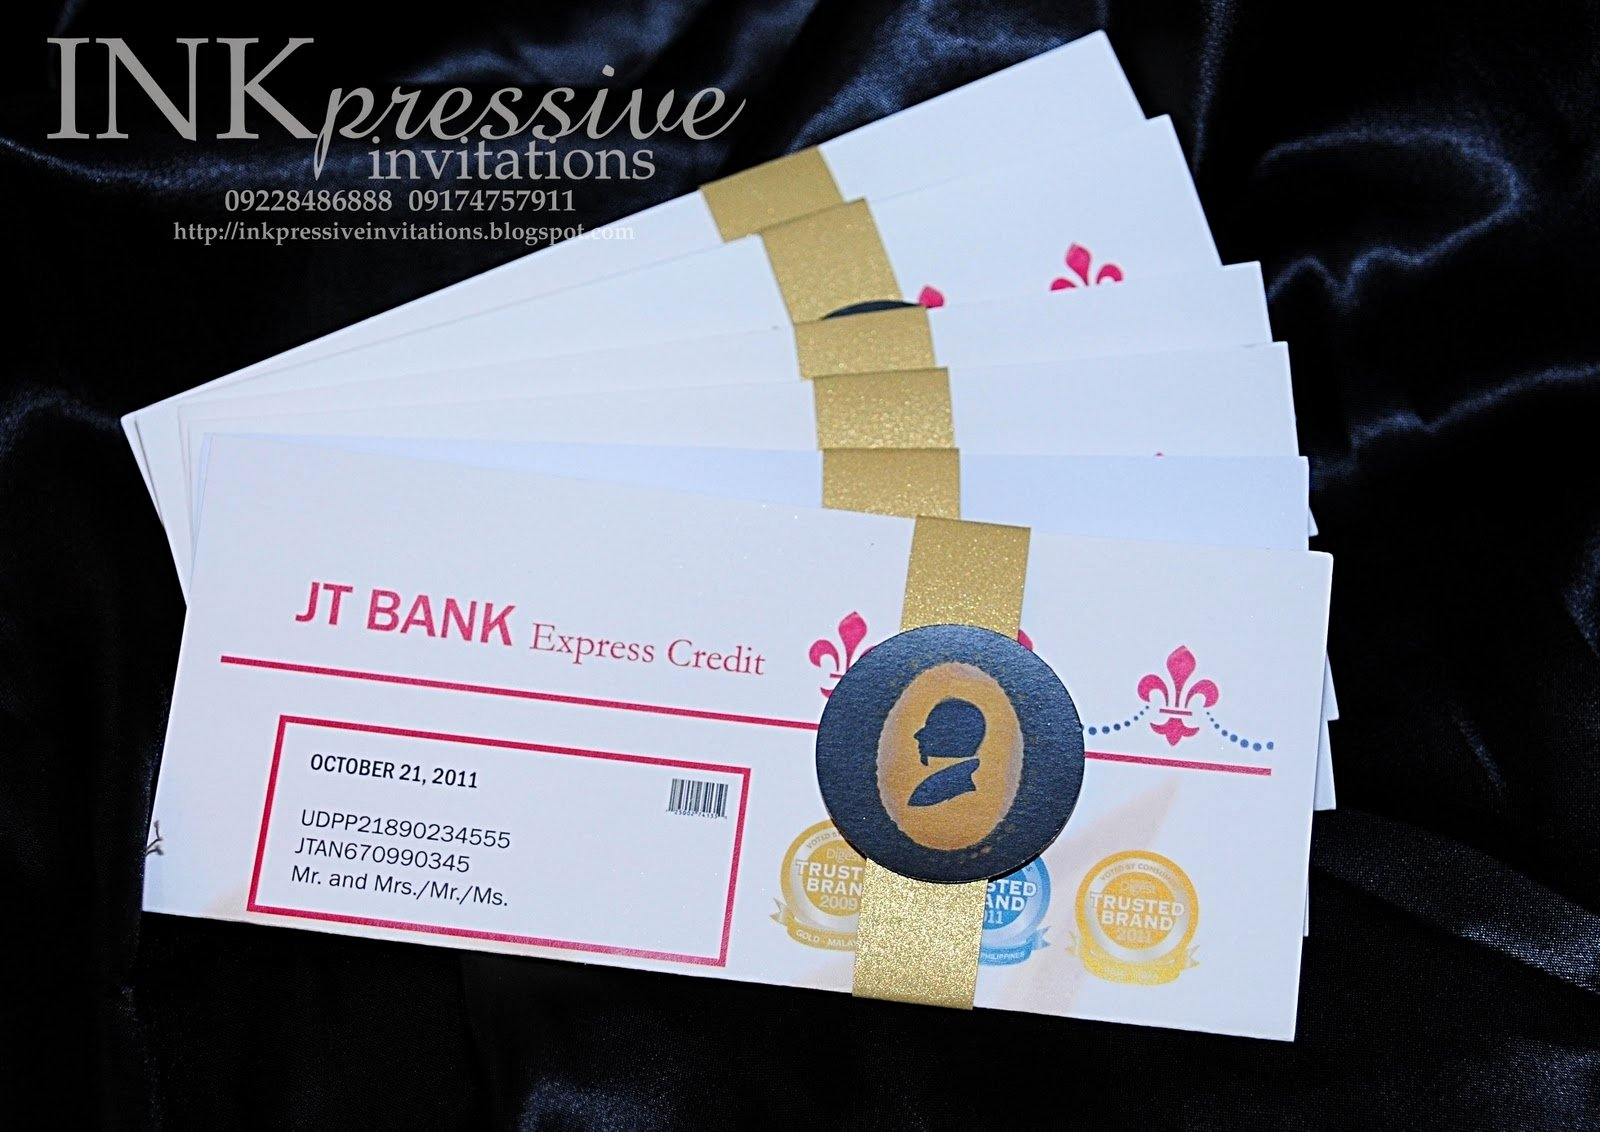 Credit Card Invitation Template Inspirational Credit Card Invitation Inkpressive Invitations and Crafts